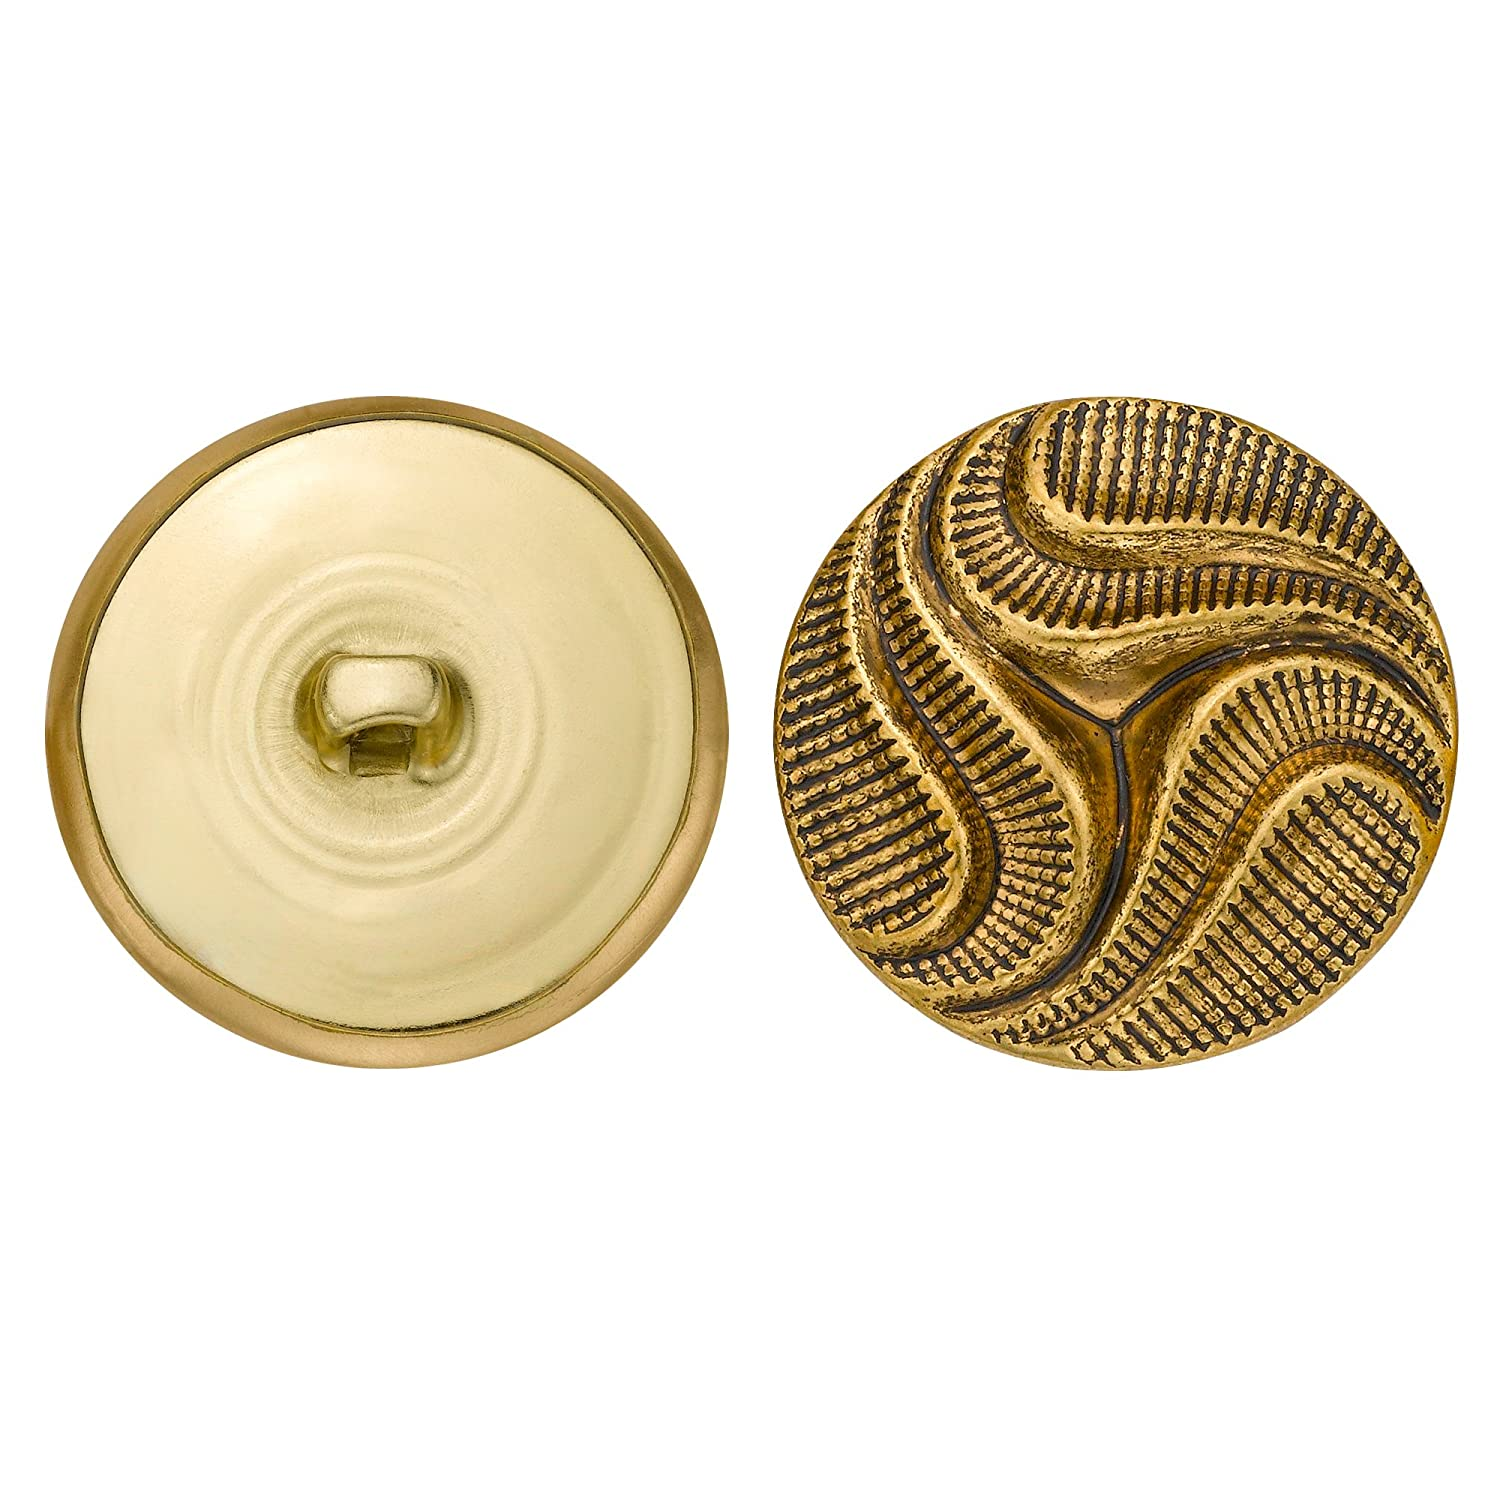 C C Metal Products 5082 Modern Swirl Metal Button Size 45 Ligne Antique Gold 36 Pack